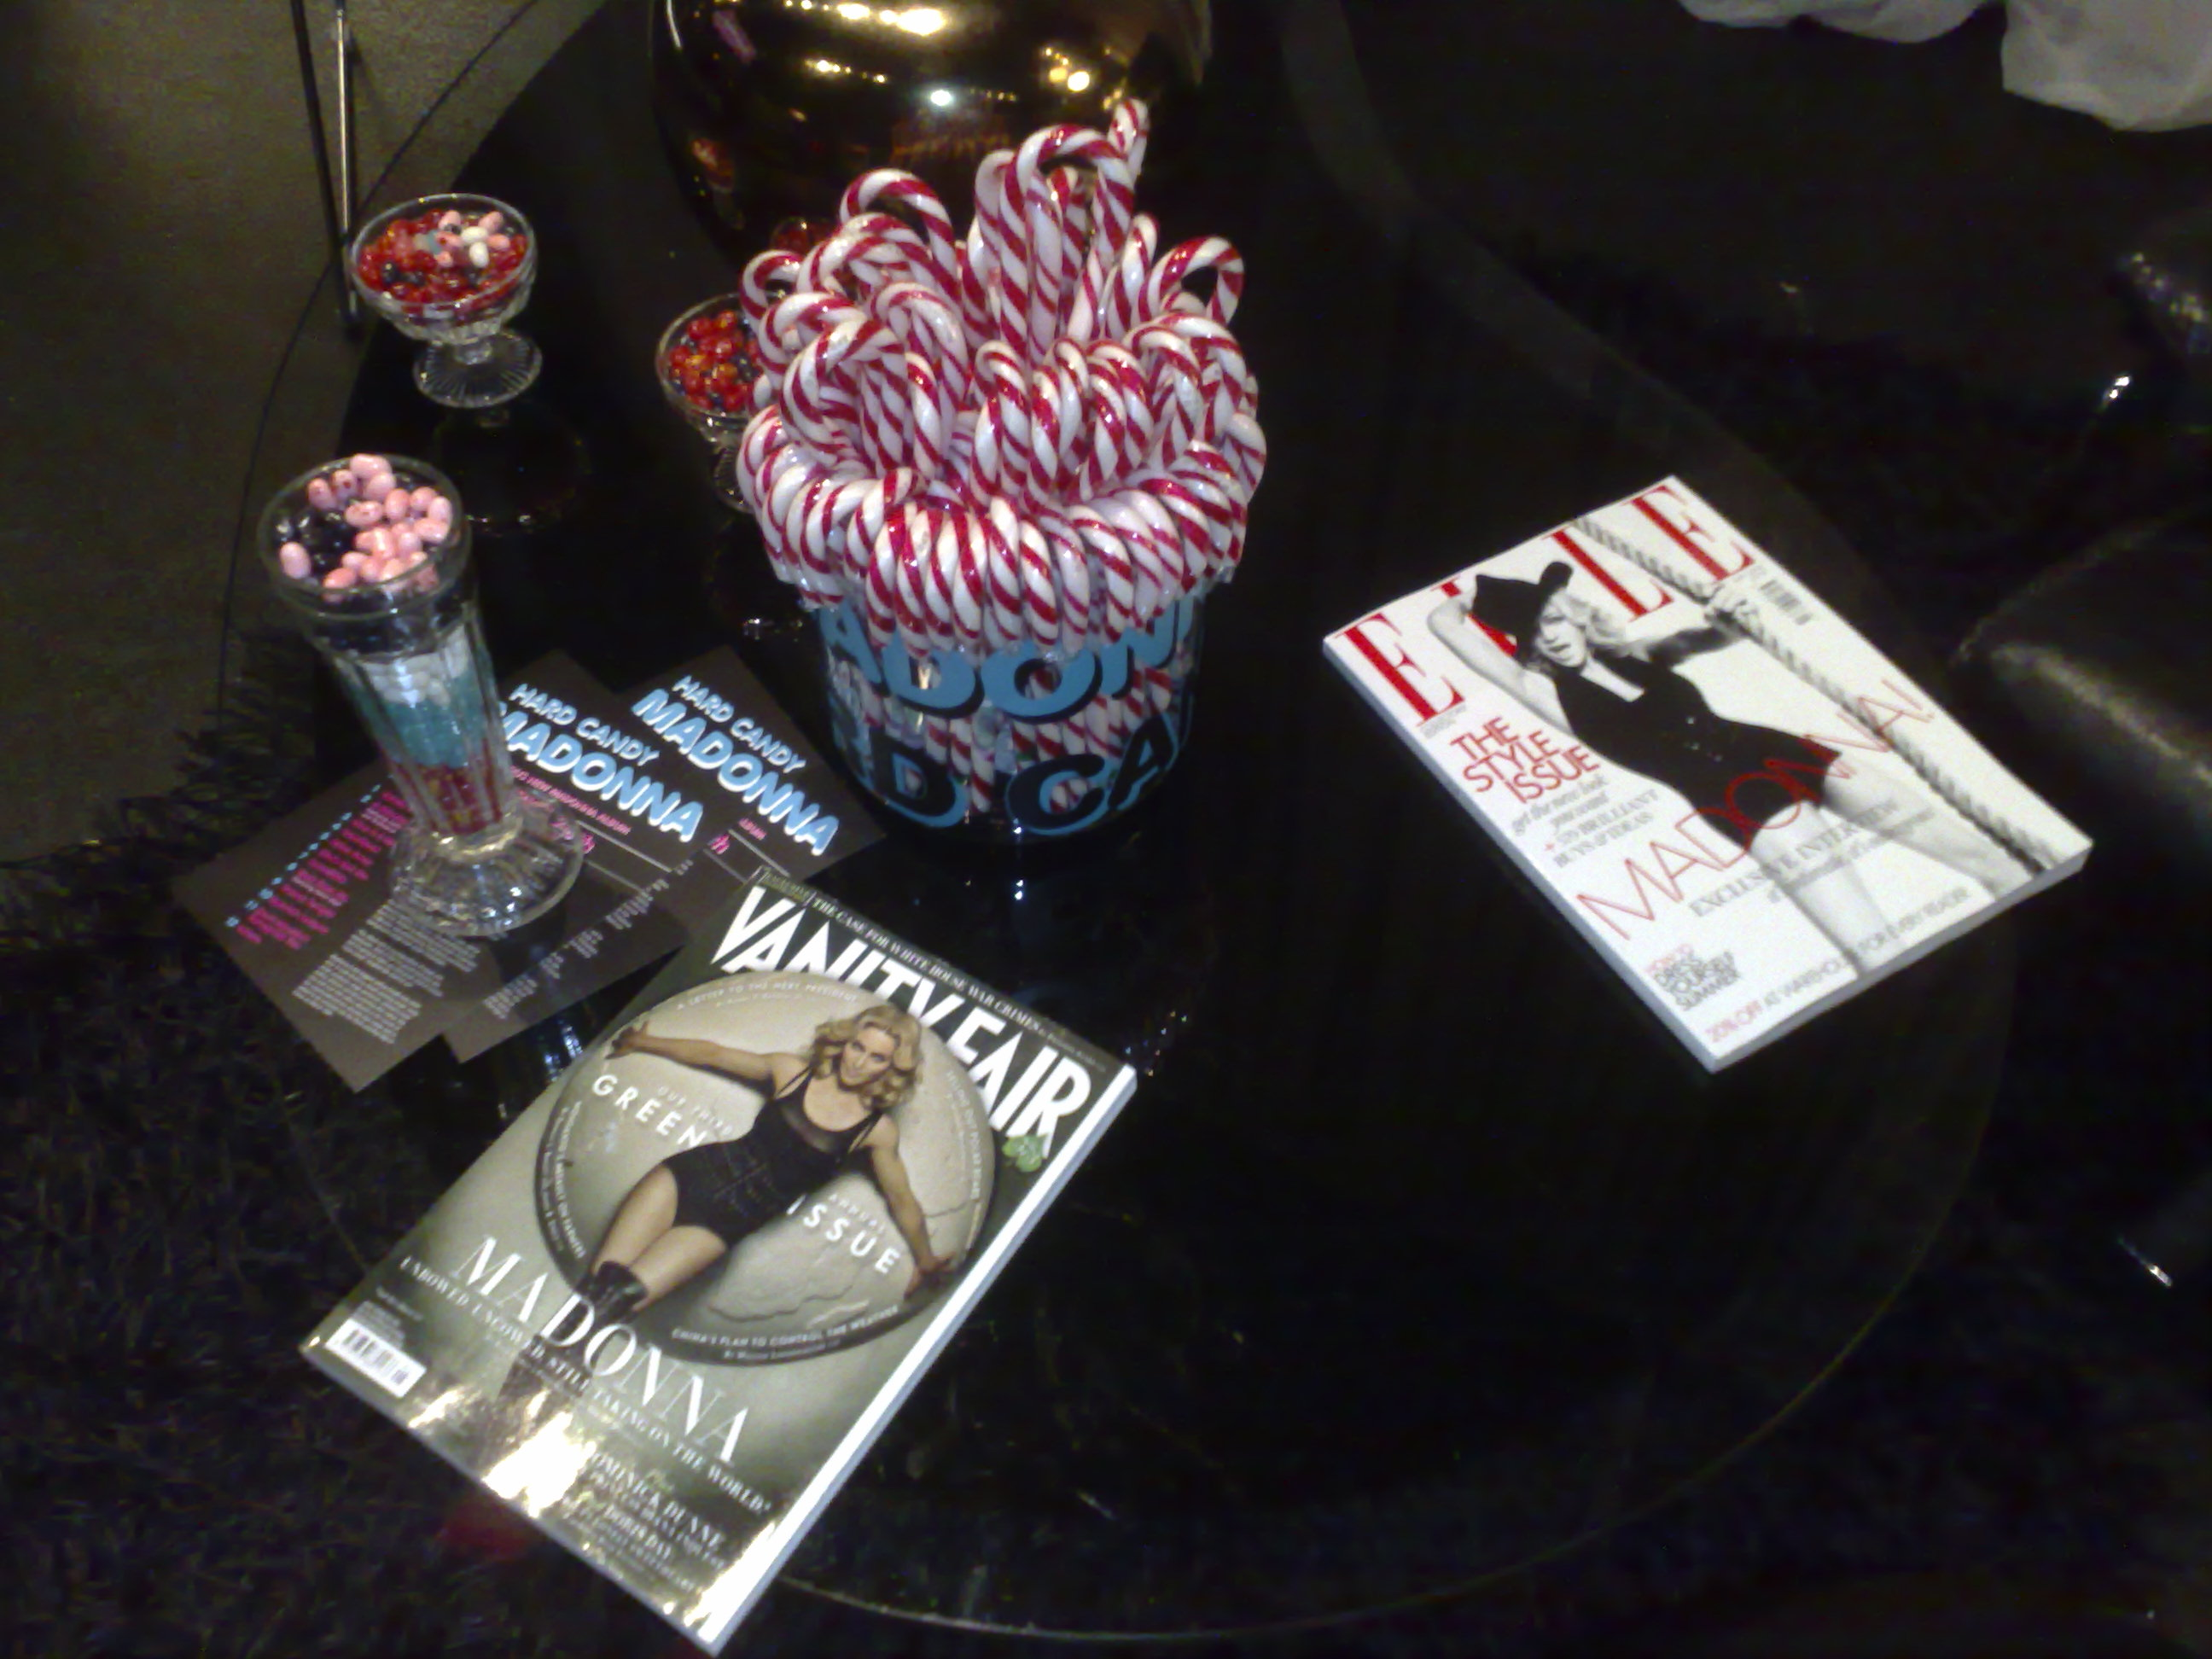 Madonna Hard Candy preview magazines